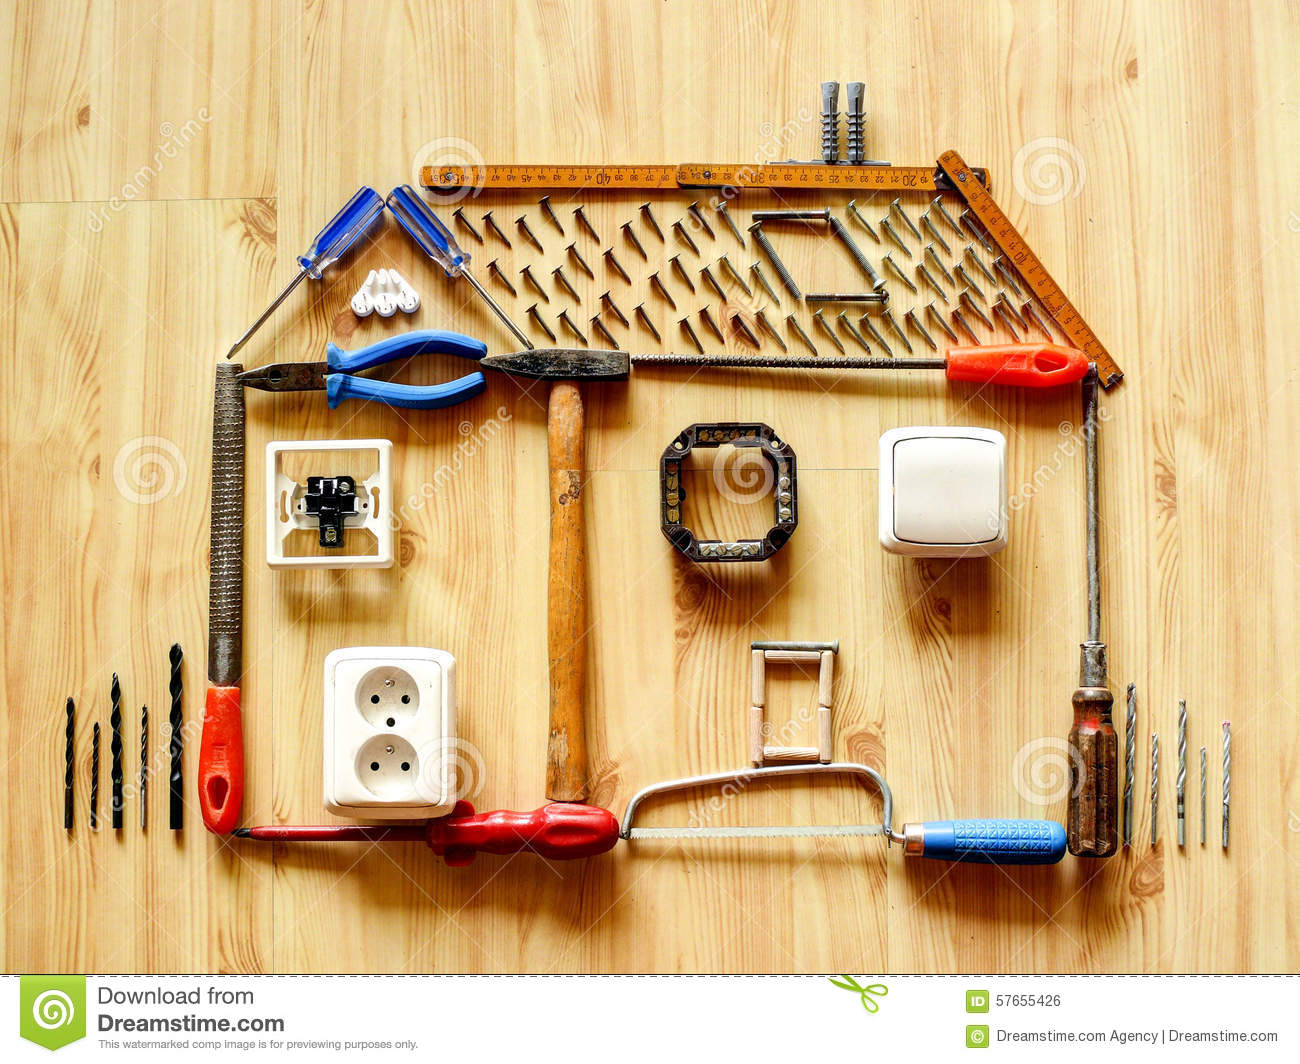 Home improvement concept. Home Improvement Concept Stock Photo   Image  57655426